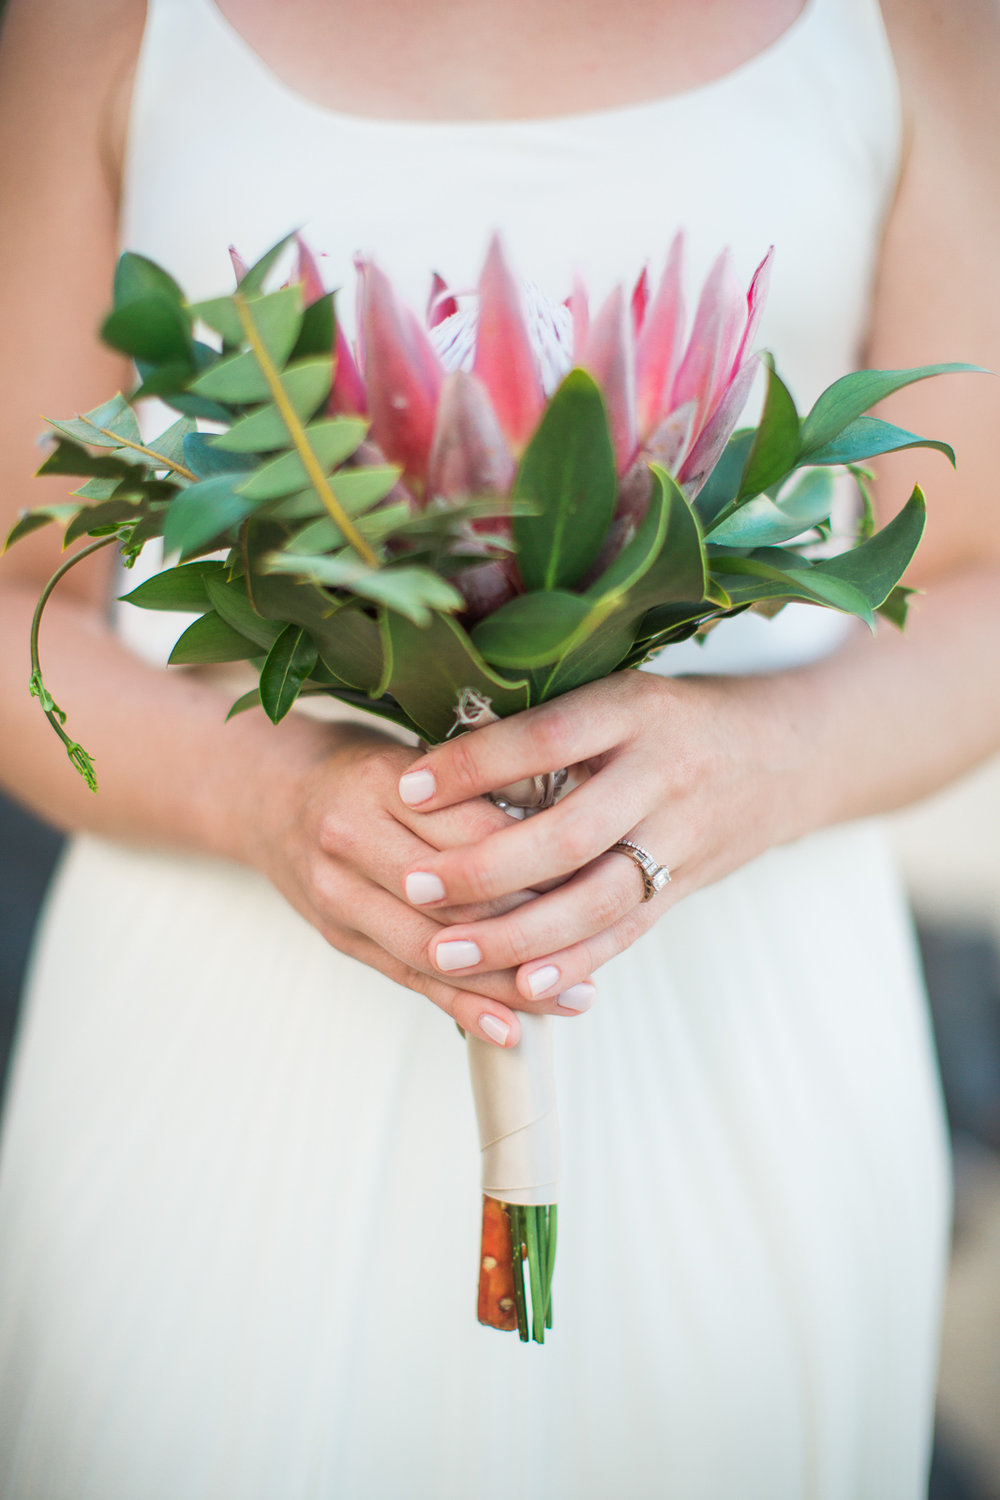 A Unique King Protea Bouquet for this Bride